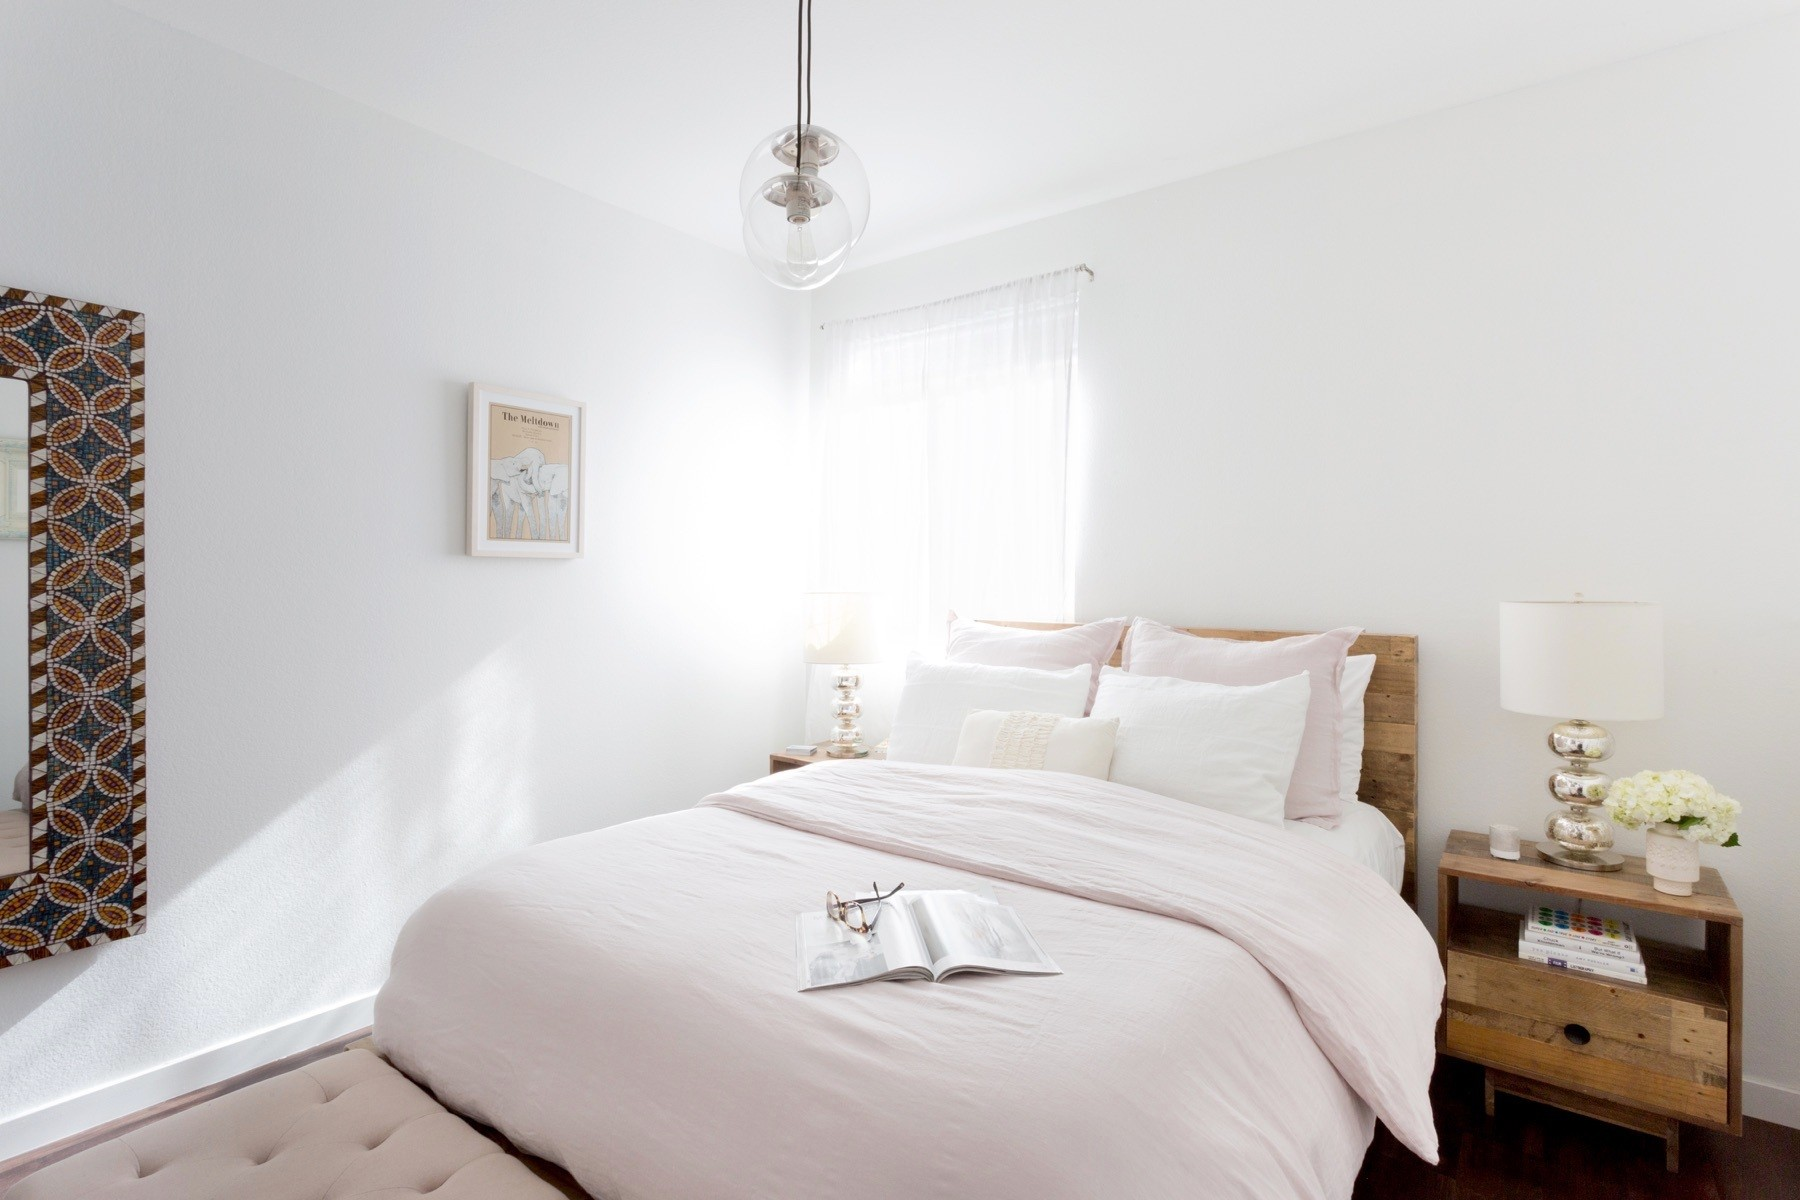 Best Layout For Small Bedroom Small Bedroom Design Ideas For Every Style See It Now Lonny